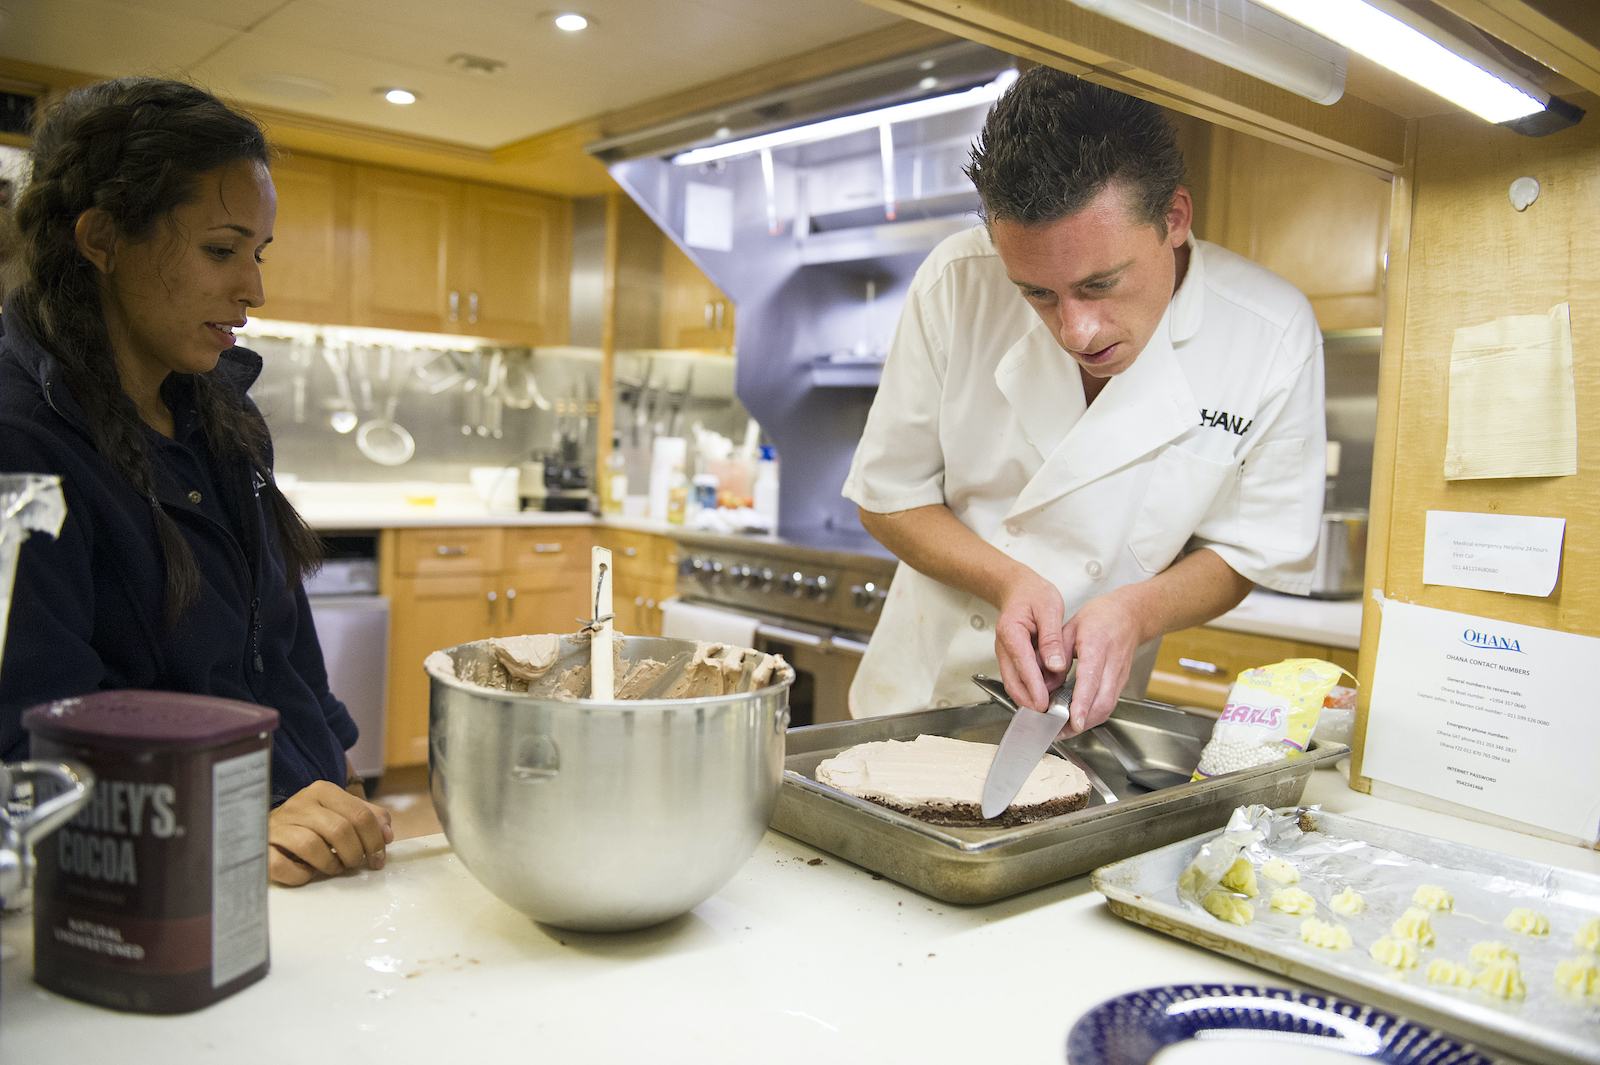 Jennice Ontiveros from Below Deck helps Chef Ben Robinson in the kitchen